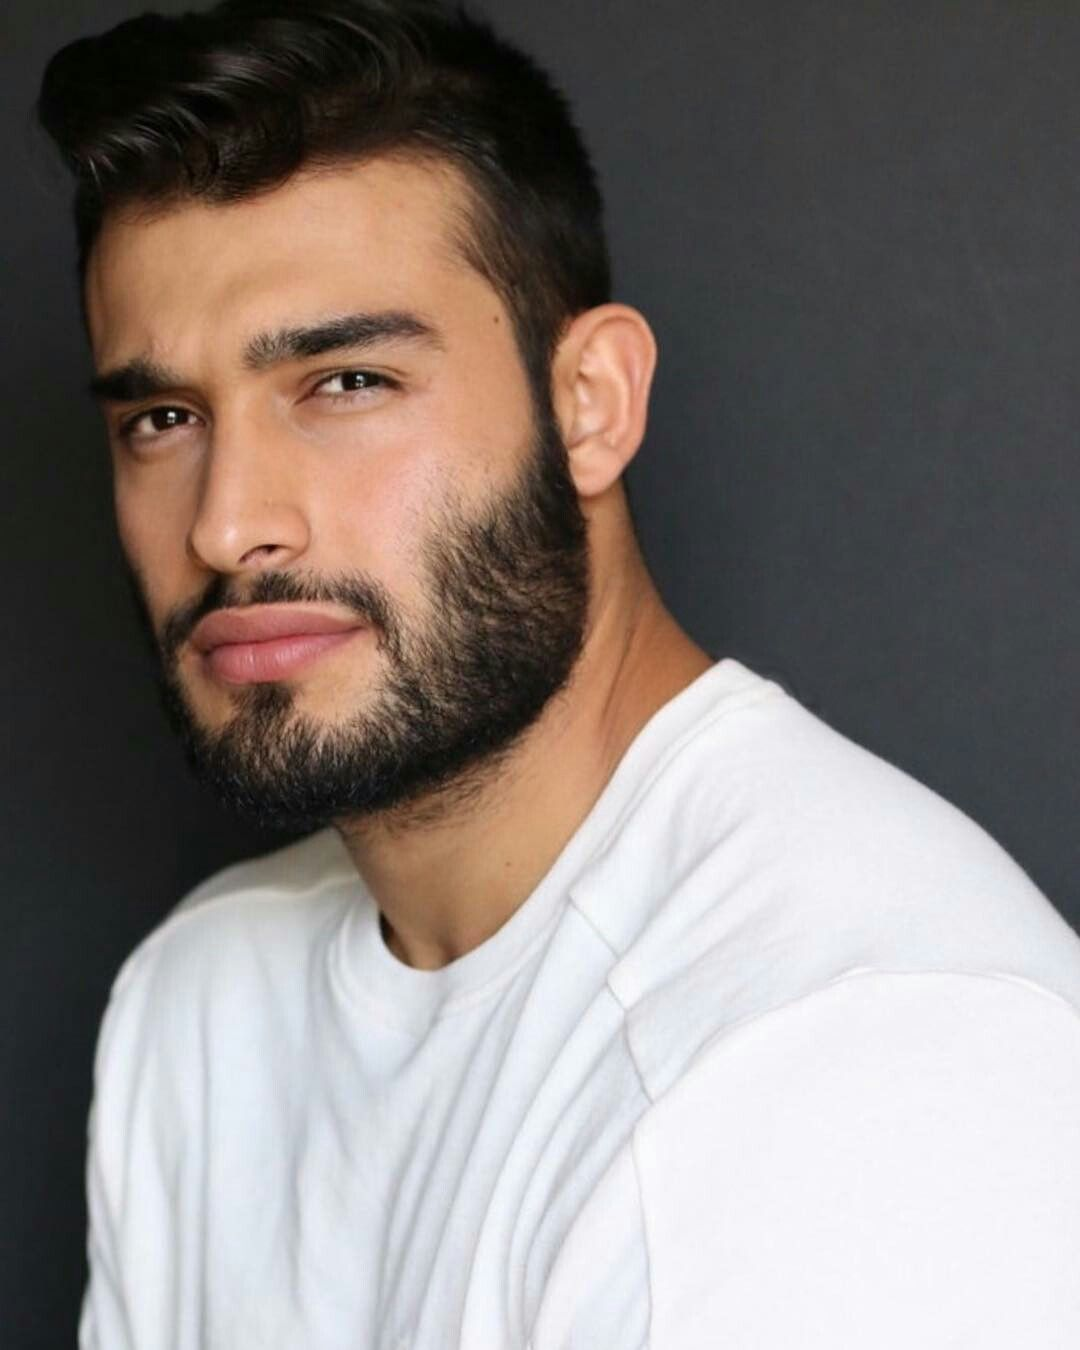 Sam Asghari Male Beauty in 2019